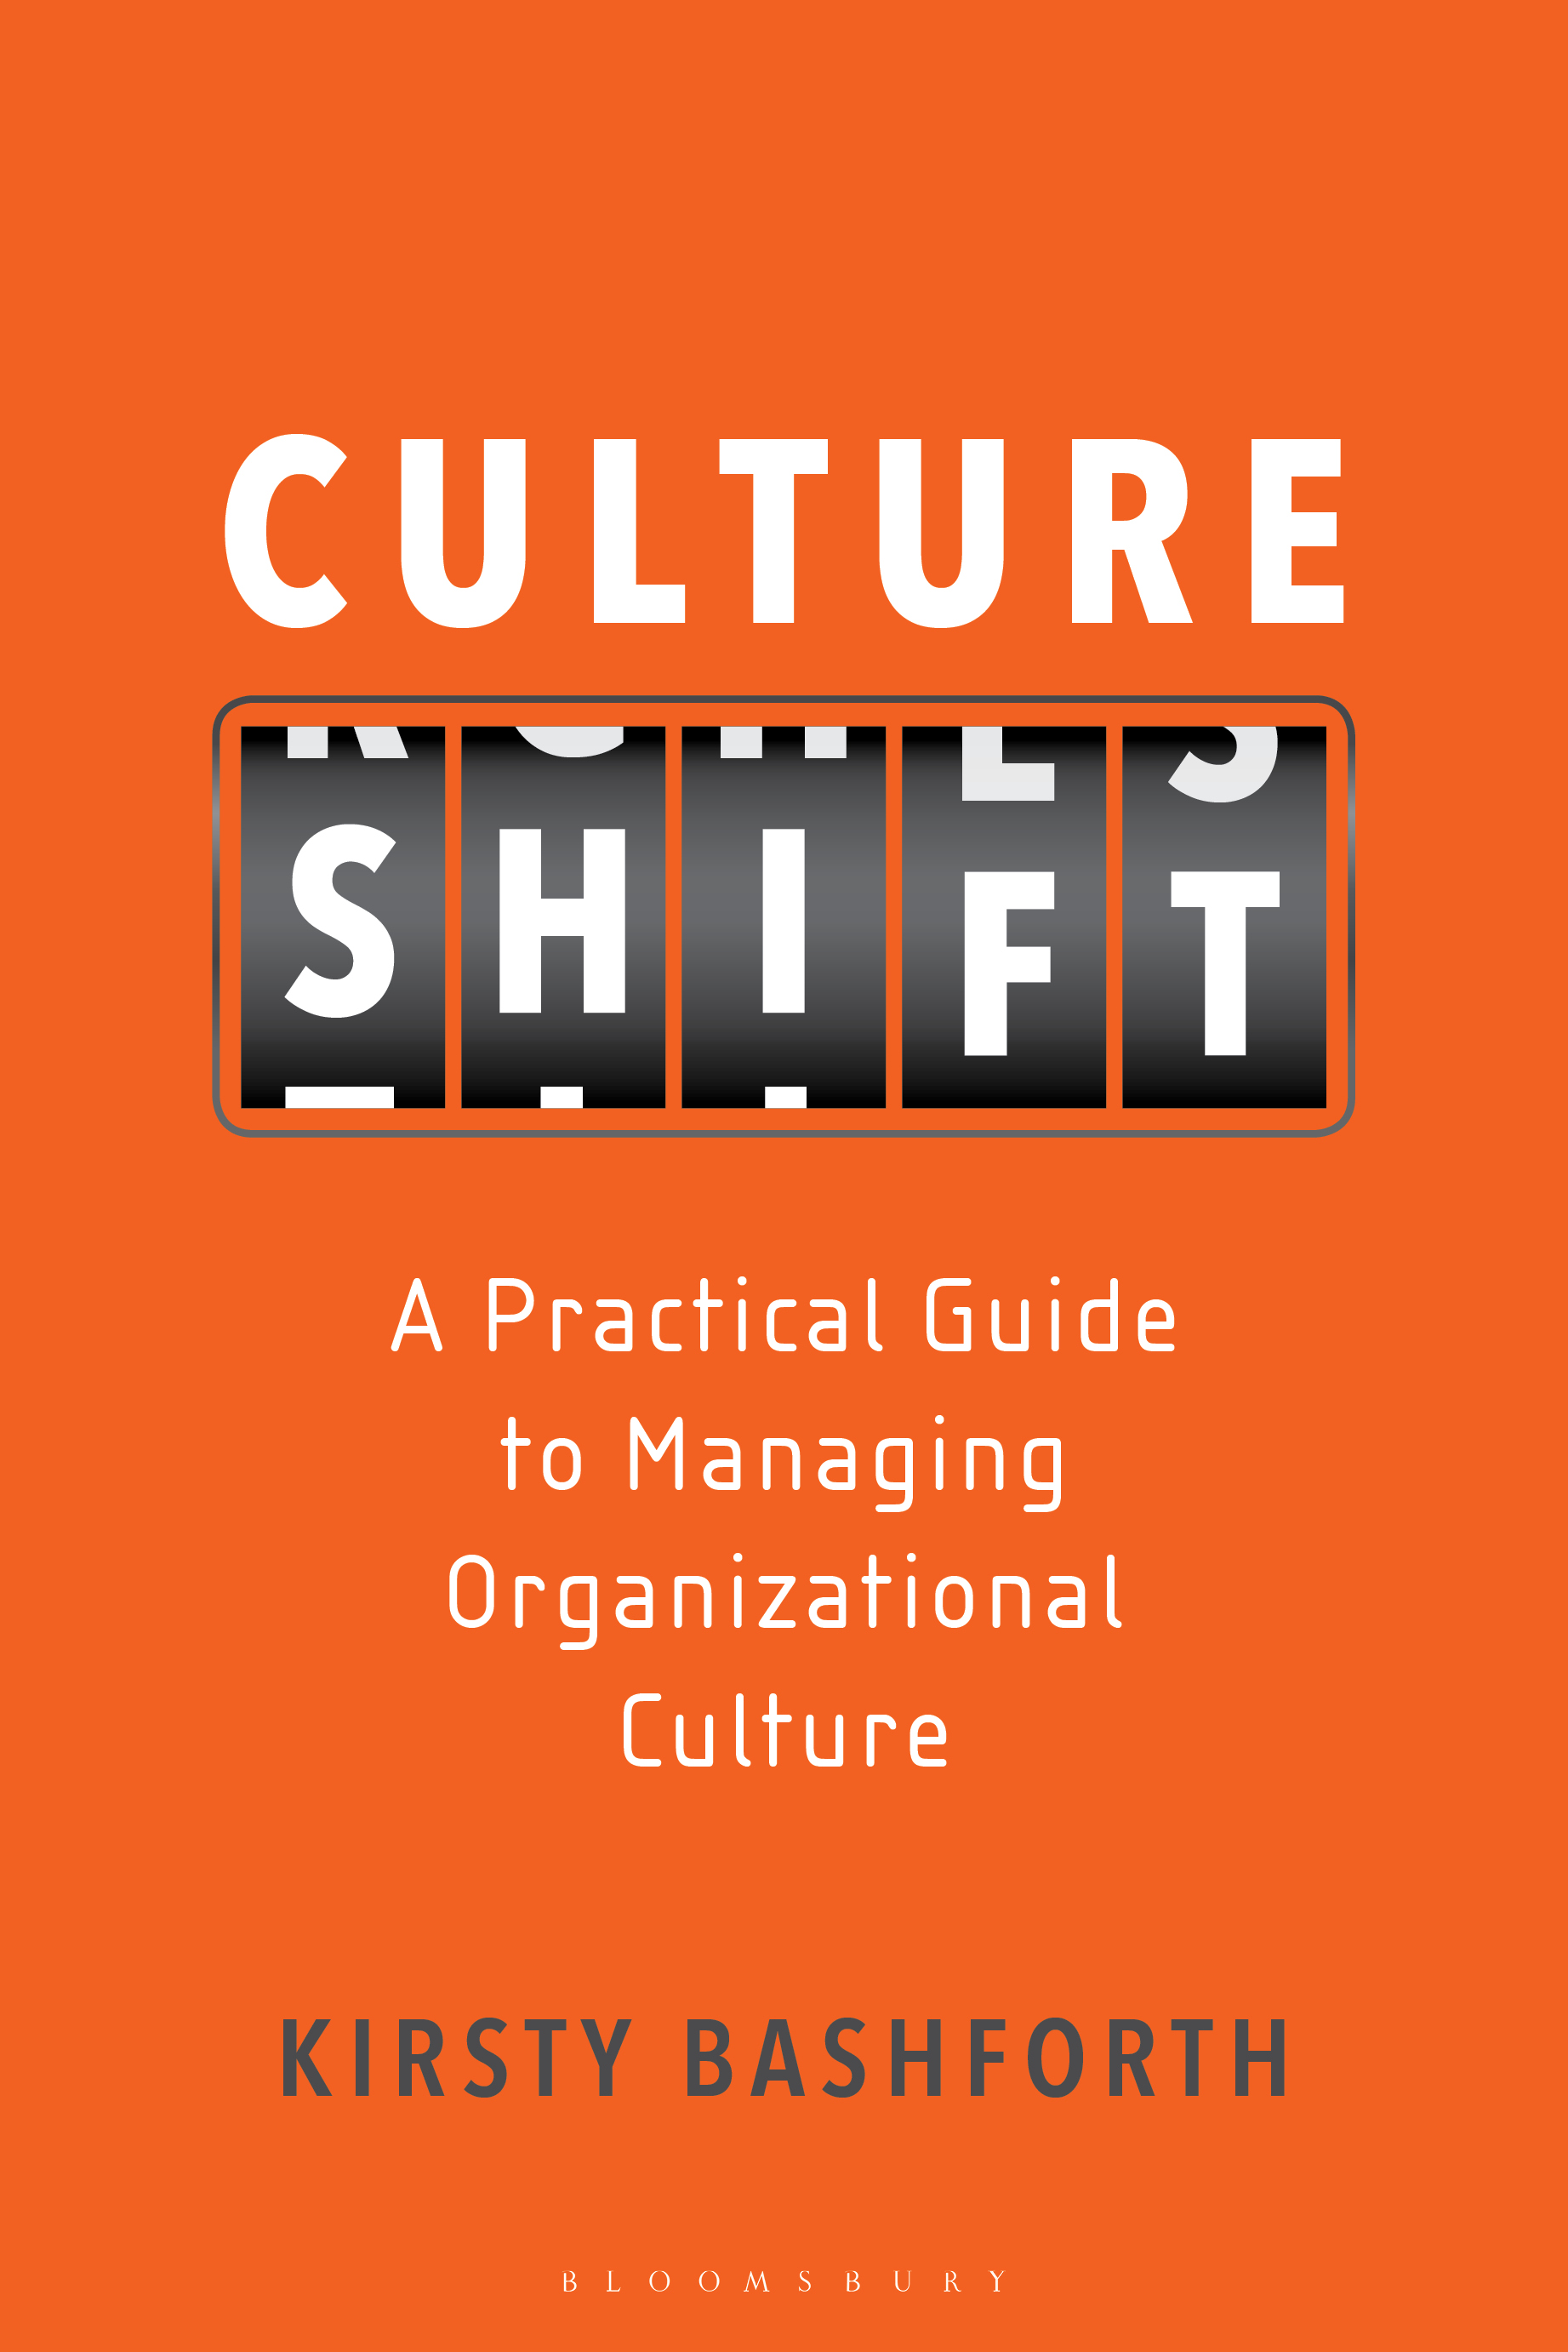 CULTURE SHIFT  Business, 232 pages, Bloomsbury Business, July 2019  Nowadays, stakeholder consideration focuses as much on an organization's culture as it does on the bottom line - employees want to work for a company that has clear values and an engaging environment; customers and clients want to know they're supporting a worthwhile brand; and investors look to back socially responsible companies with good organizational health.  Too often, too many businesses see culture change as a project with a defined end point once the project is considered 'done', the dominant culture re-emerges and things go back to how they were. Culture Shift guides organizations on how to do things differently, ensuring that culture really does shift (with minimal budget and no external consultants) and putting culture permanently at the core of running the business.  Founded on behavioural economics, Culture Shift recognises that people do not always make average assumptions or follow rational logic. Changing a culture, therefore, is not about telling people what to do and expecting them to fall neatly in line - it's about identifying where they are now and how they make decisions, in order to help them form new habits to create a sustainable culture shift, from the very top of the organization's workforce to the bottom.  Using her extensive experience, Kirsty Bashforth outlines exactly what it takes to oversee sustainable culture change in an organization. The book explores how to communicate cultural expectations to a number of stakeholders; implement new, lasting habits in the workforce; effectively measure and track organizational culture; as well as deal with pushback from senior leadership when, as time passes, the planned culture shift risks falling lower on their agenda